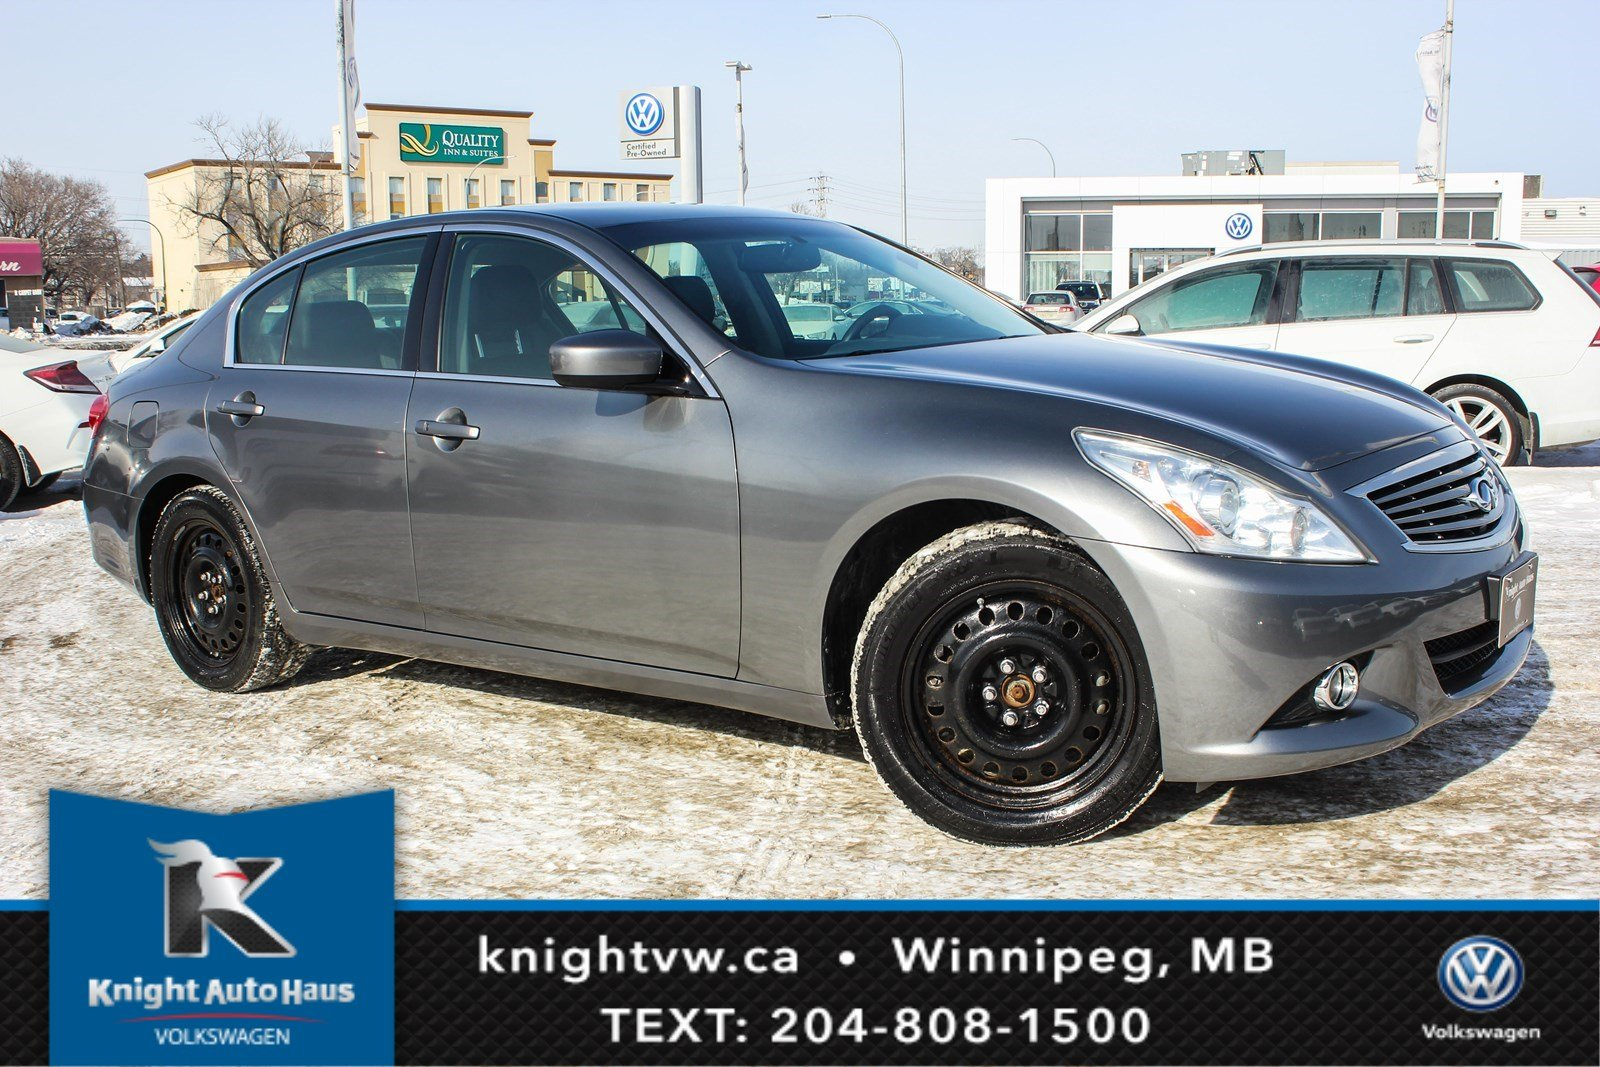 Pre-Owned 2012 INFINITI G37 Sedan Luxury w/ Leather/Sunroof/Winter Tires Rims